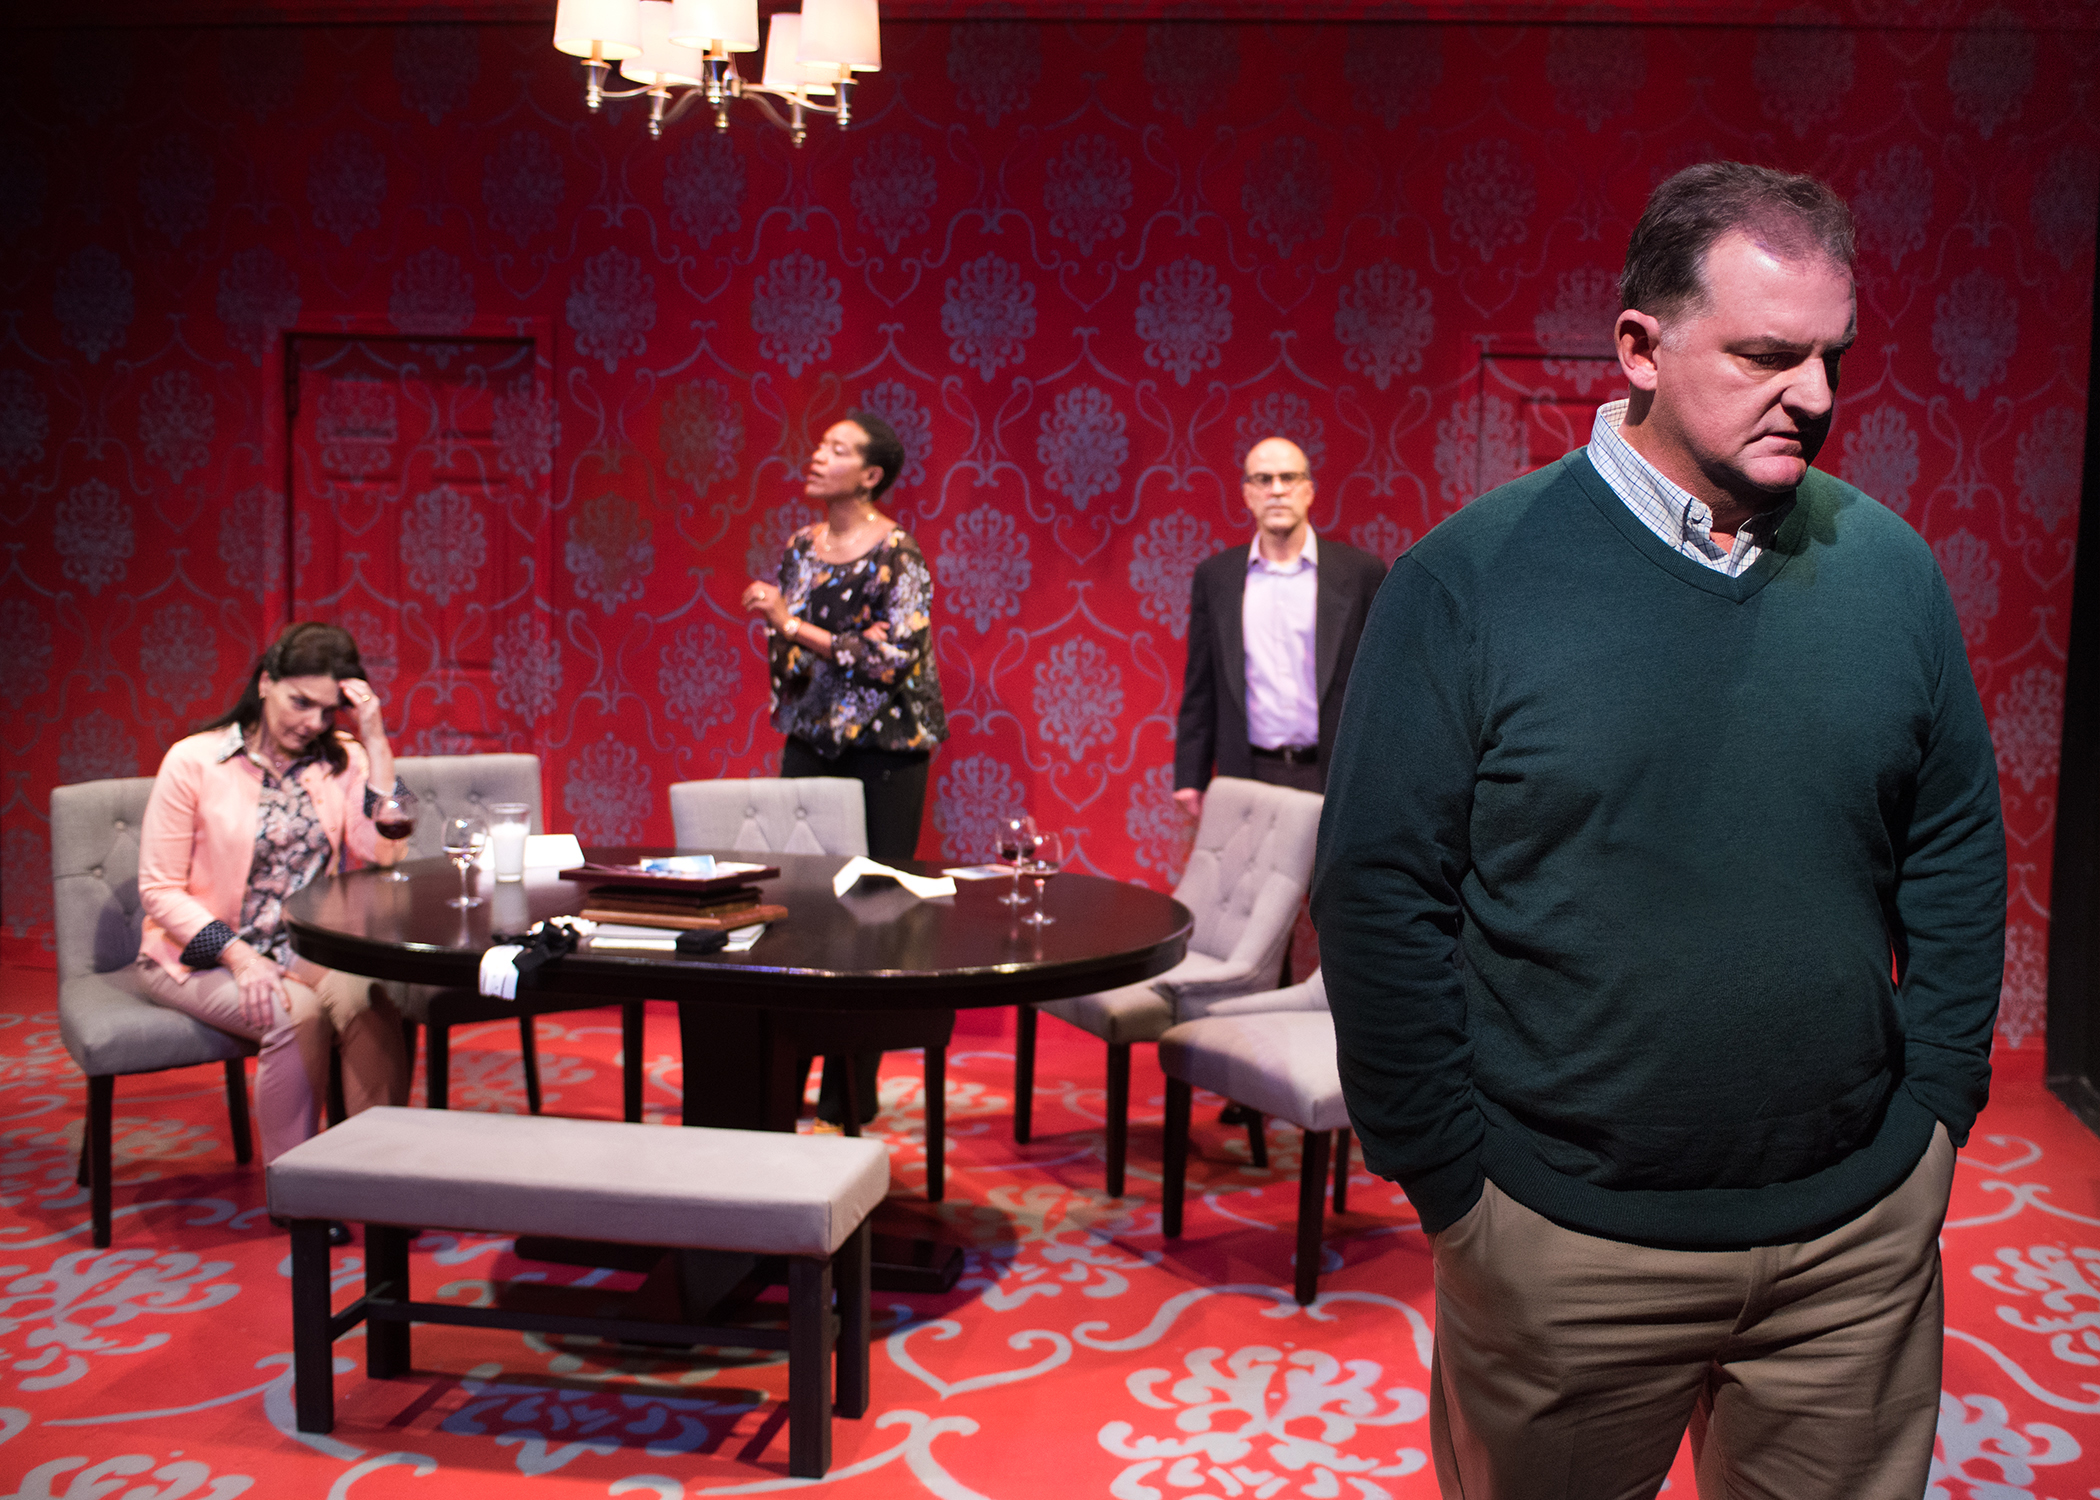 L to R: Tamara (Cheryl Smith), Debora (Desiree Rogers), and Michael (Lawrence Radecker) are shaken by Bill's (Kenneth Heaton) view on parenting. Photo by Lois Tema.